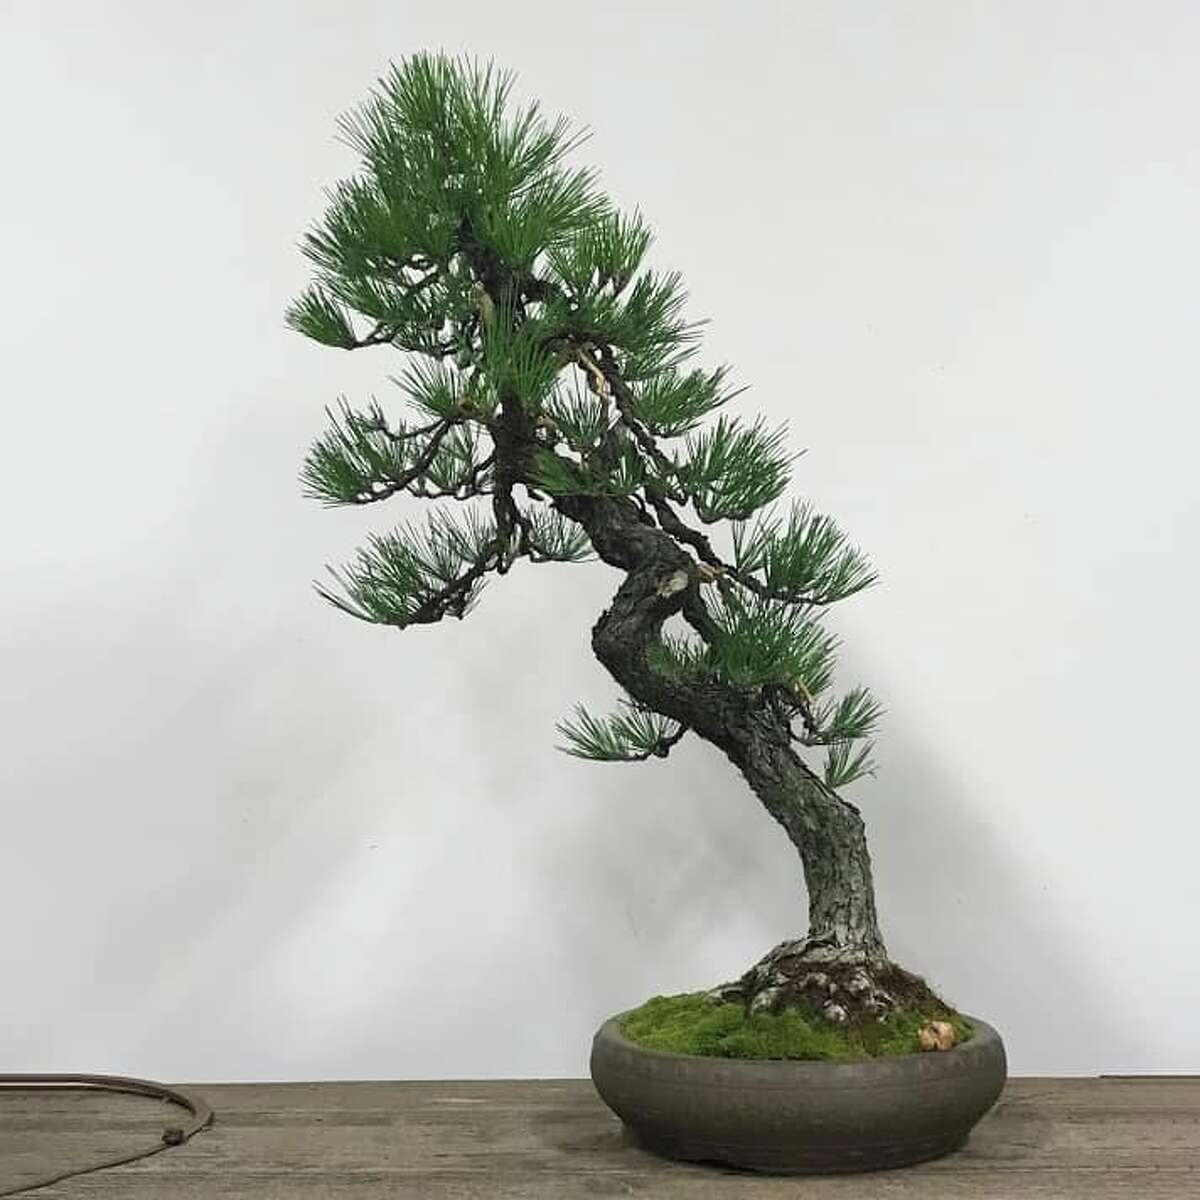 A Japanese black pine was stolen from the Pacific Bonsai Museum in Federal Way. This one was raised from a seed in a tin can by Jizaburo Furuzawa while he was incarcerated during World War II.